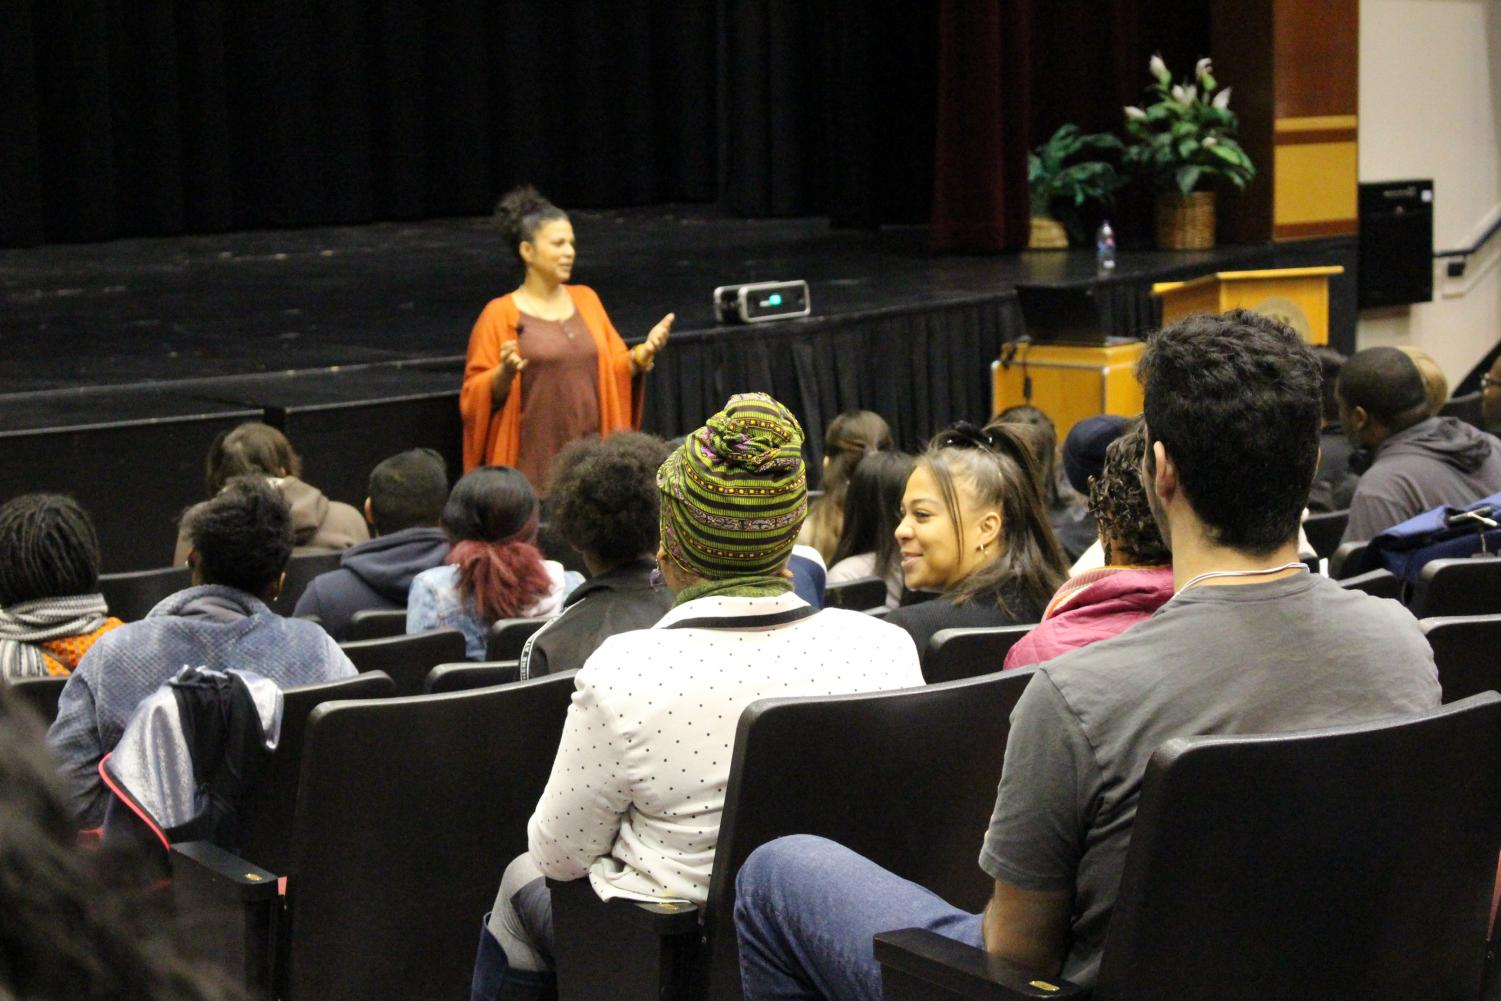 Keynote Speaker Dr. Melina Abdullah addresses students at Cosumnes River College's kickoff on Feb. 4 to Black History month. Dr. Abdullah is currently the leader of the Los Angeles Chapter of the Black Lives Matter Movement.